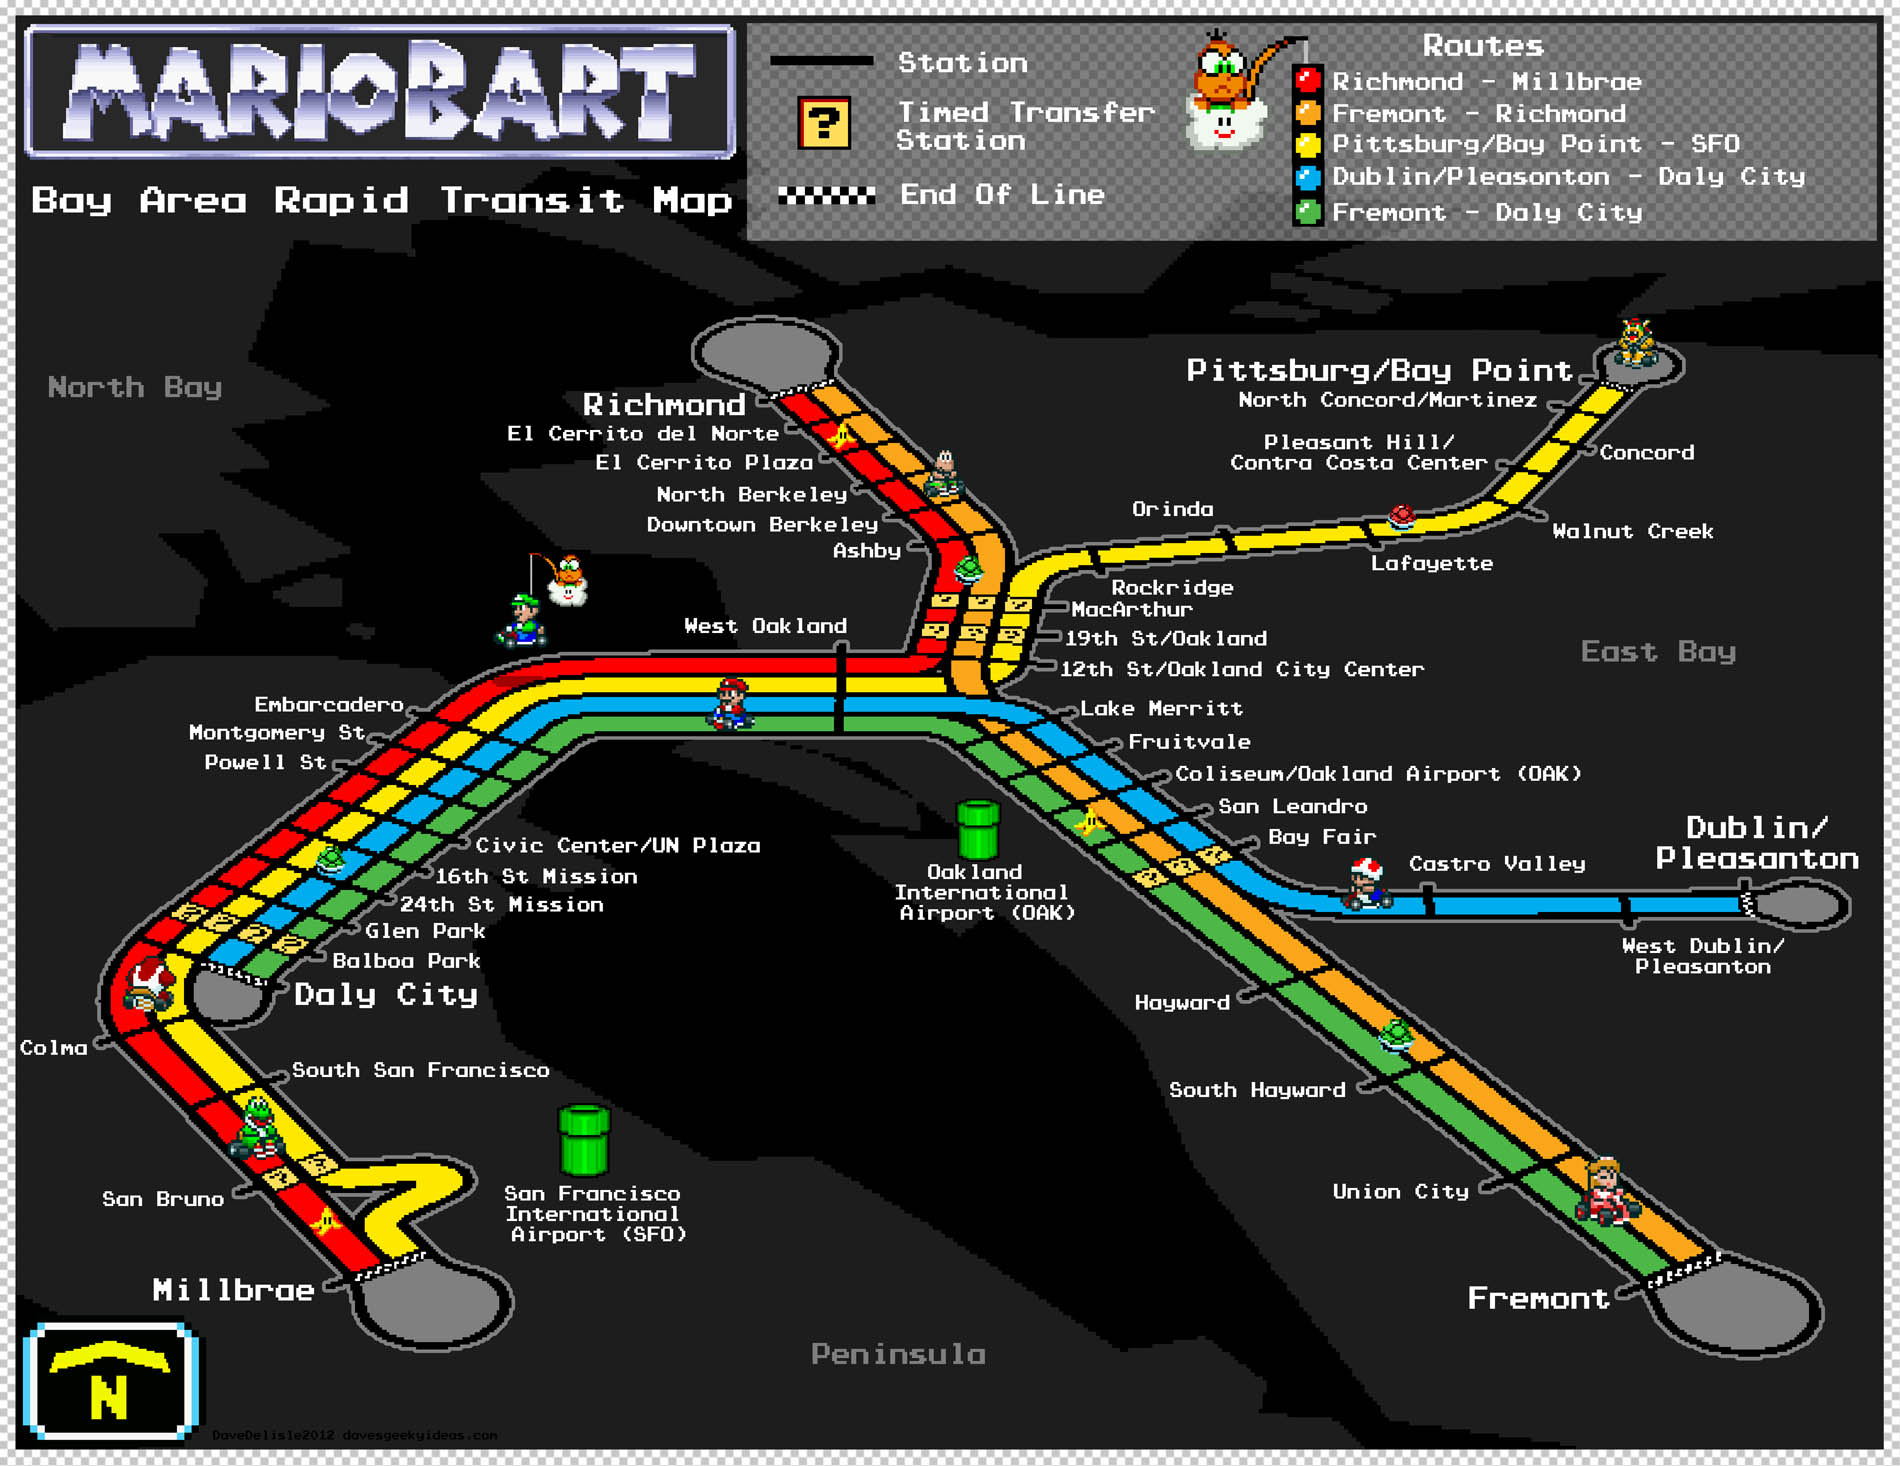 Bay Area Rapid Transit Map – Super Mario Kart Style – Dave\'s Geeky Ideas